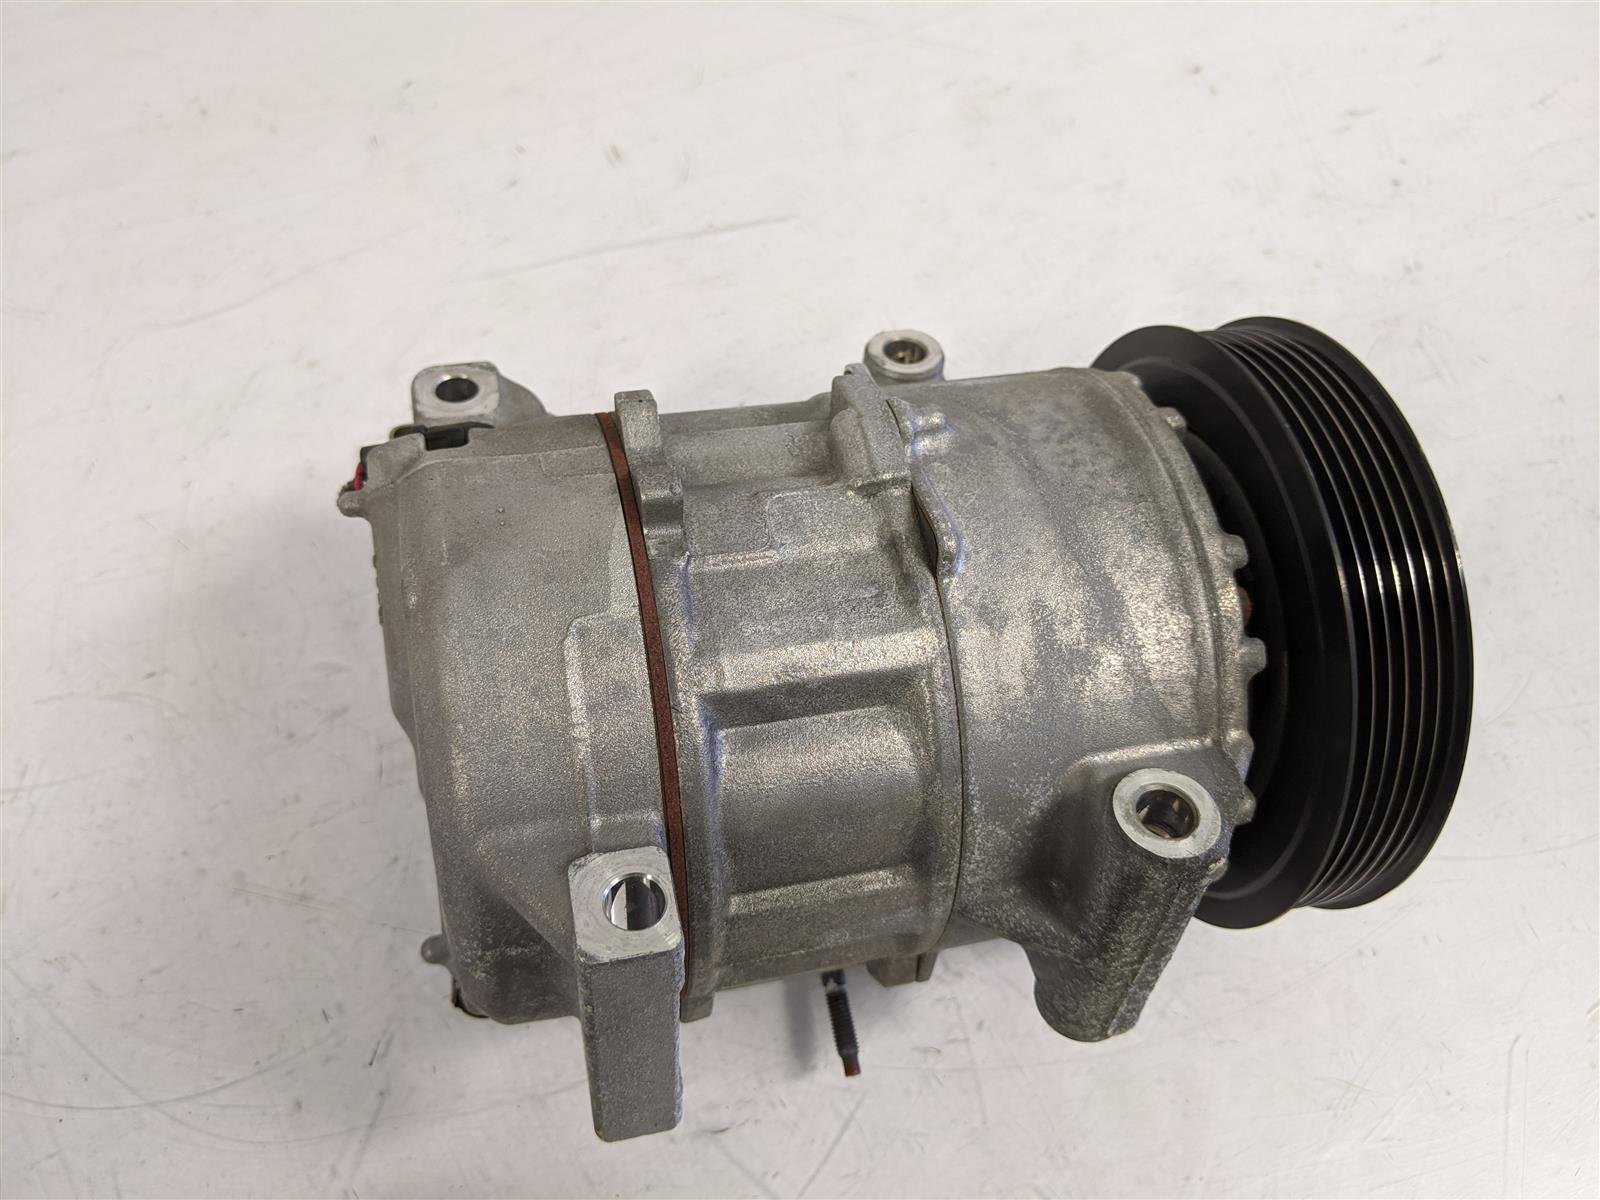 2018 Honda Odyssey Ac Compressor Assy Replacement